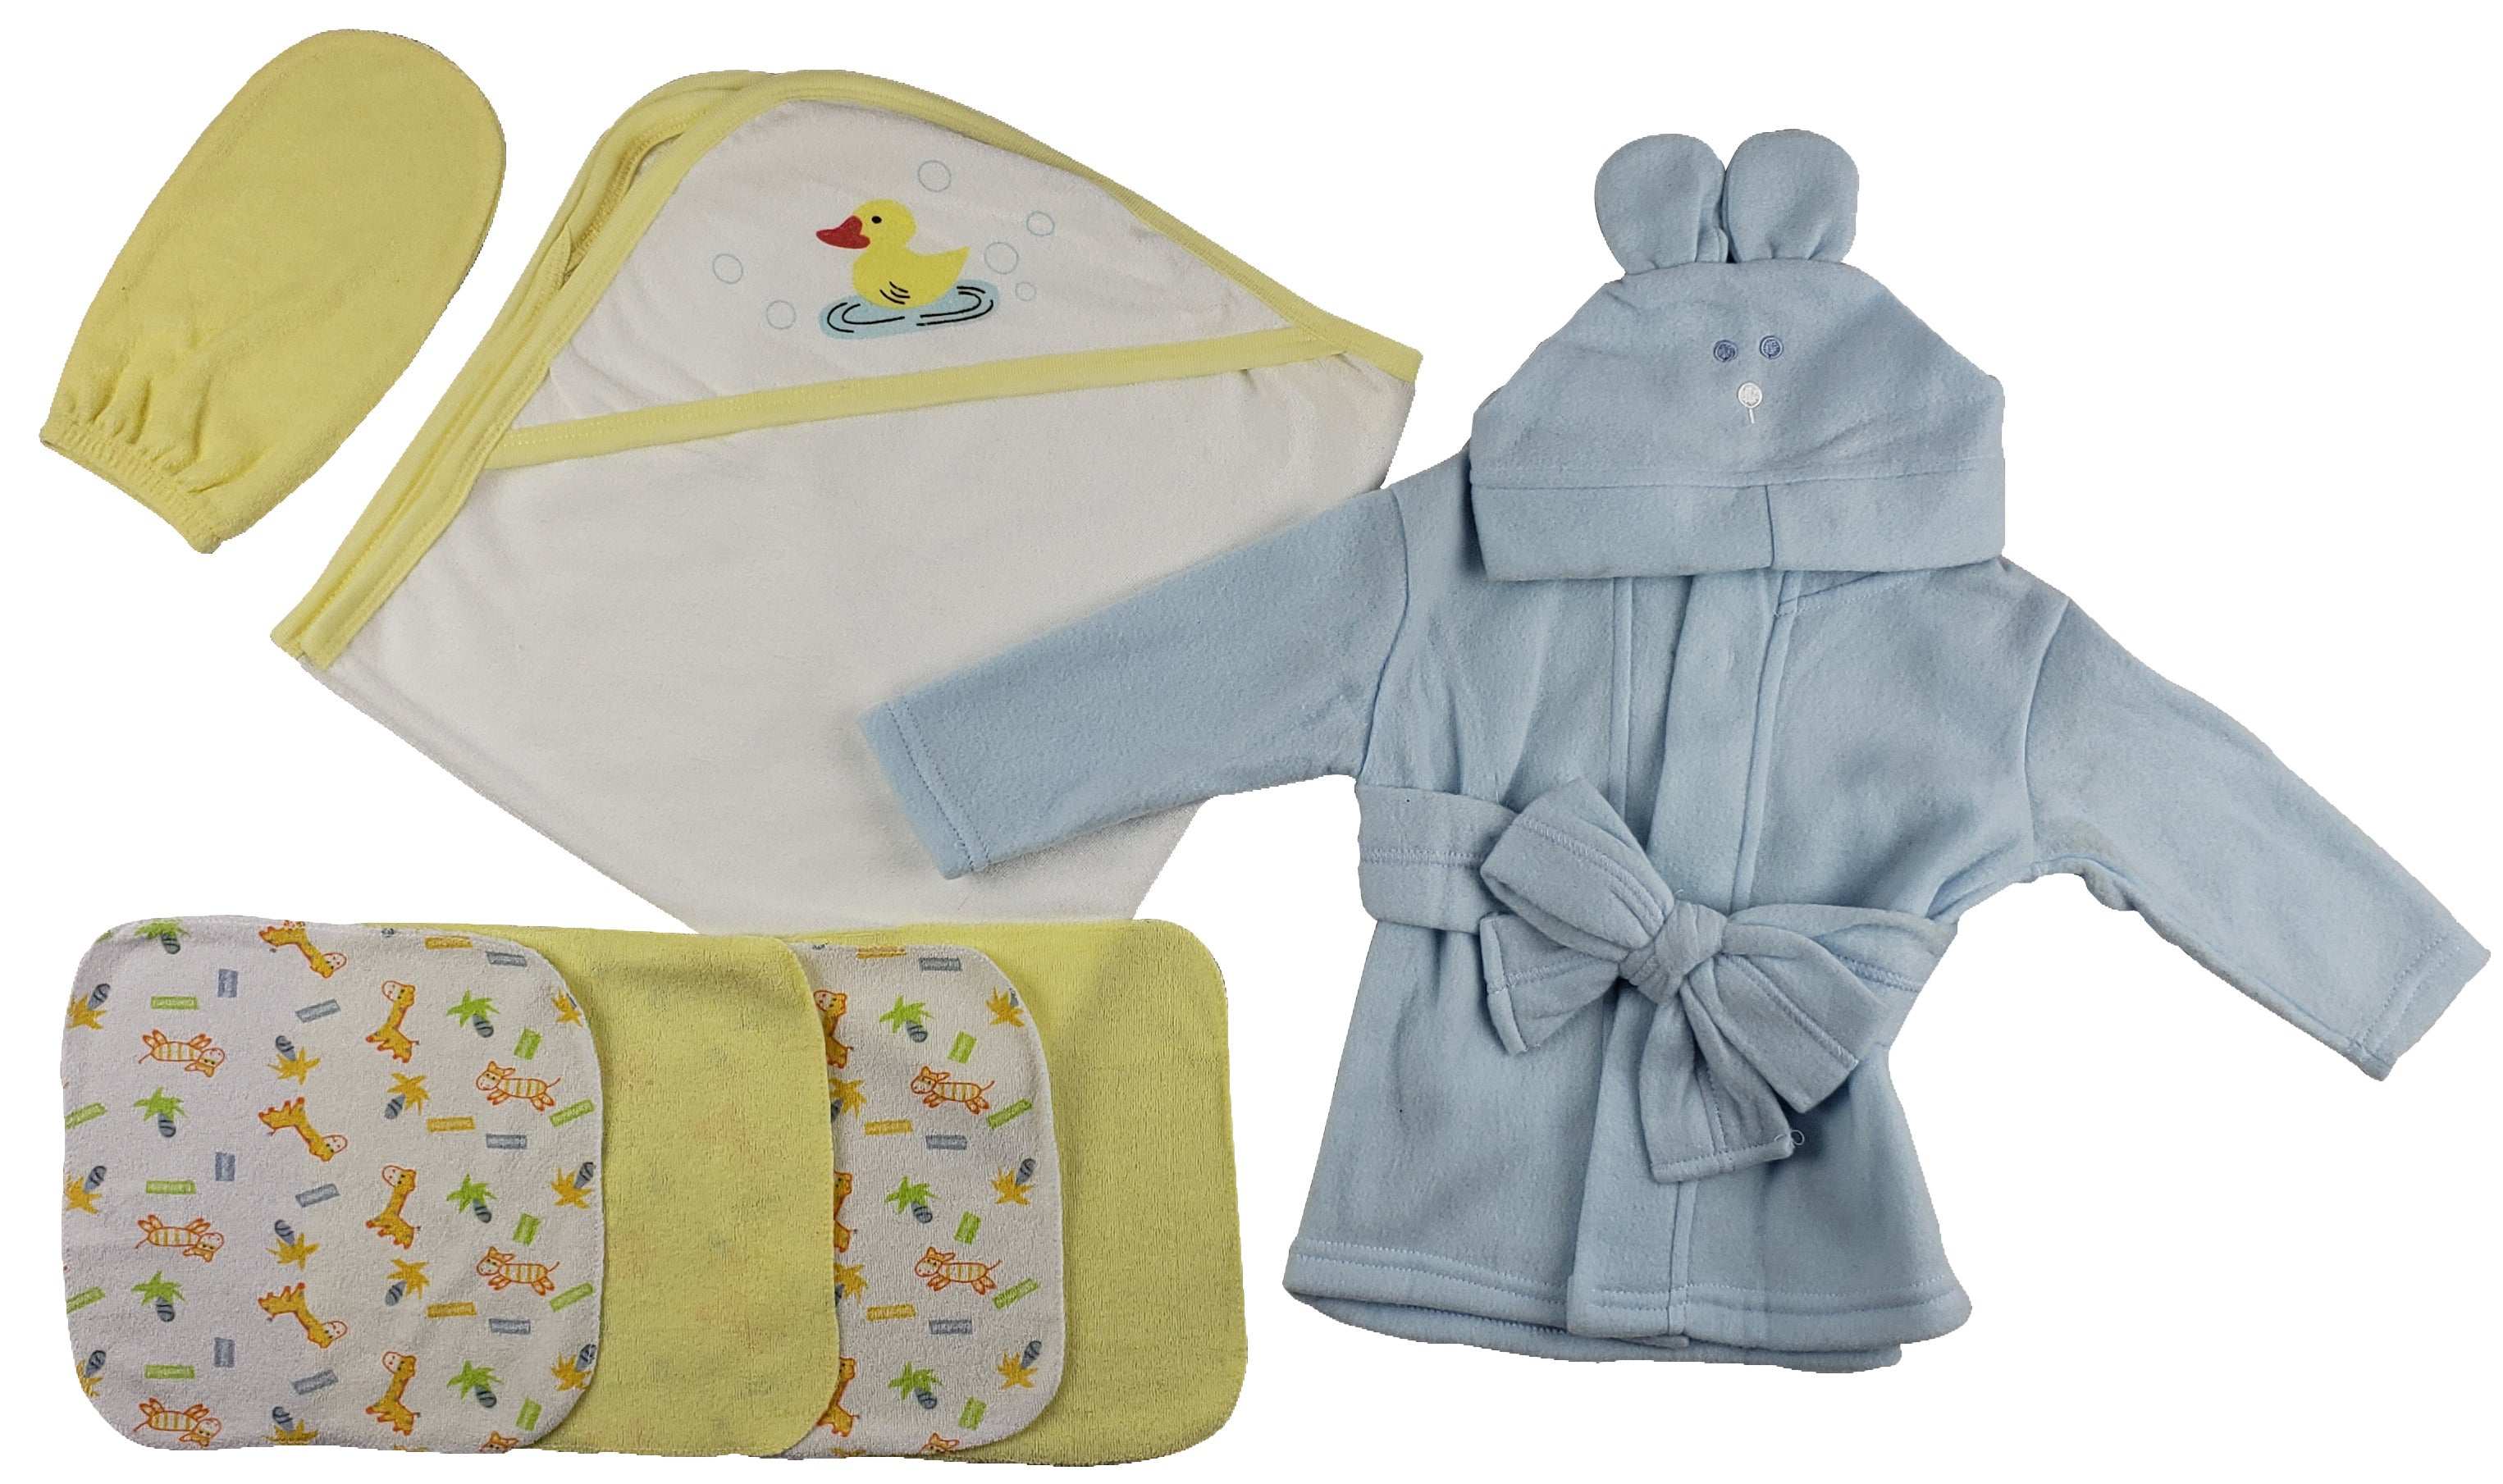 Blue Infant Robe, Yellow Hooded Towel, Washcloths and Hand Washcloth Mitt - 7 Pc Set�